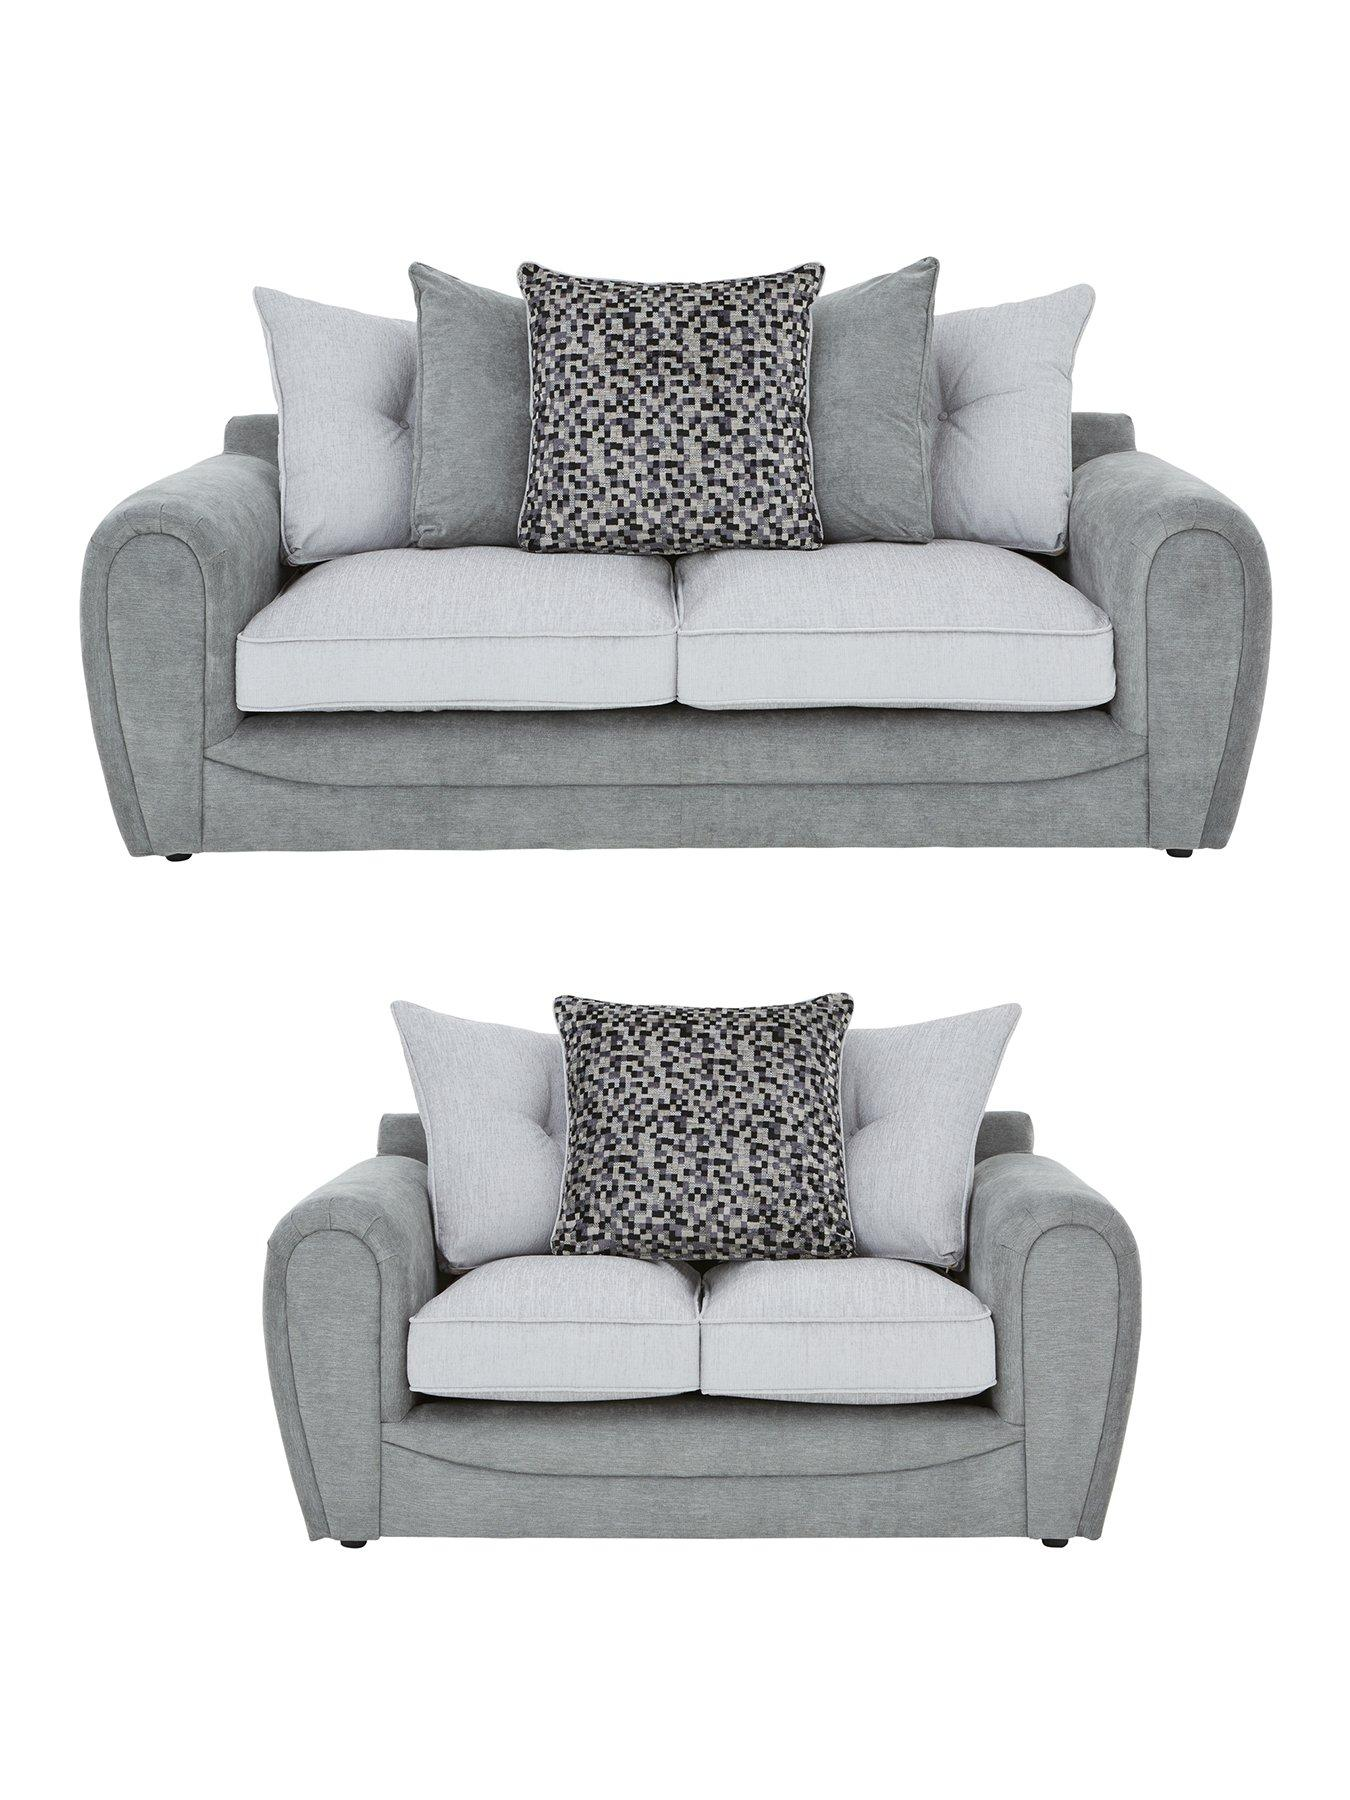 3 seater fabric sofa cheap corner bed glasgow mosaic 2 set buy and save littlewoods com